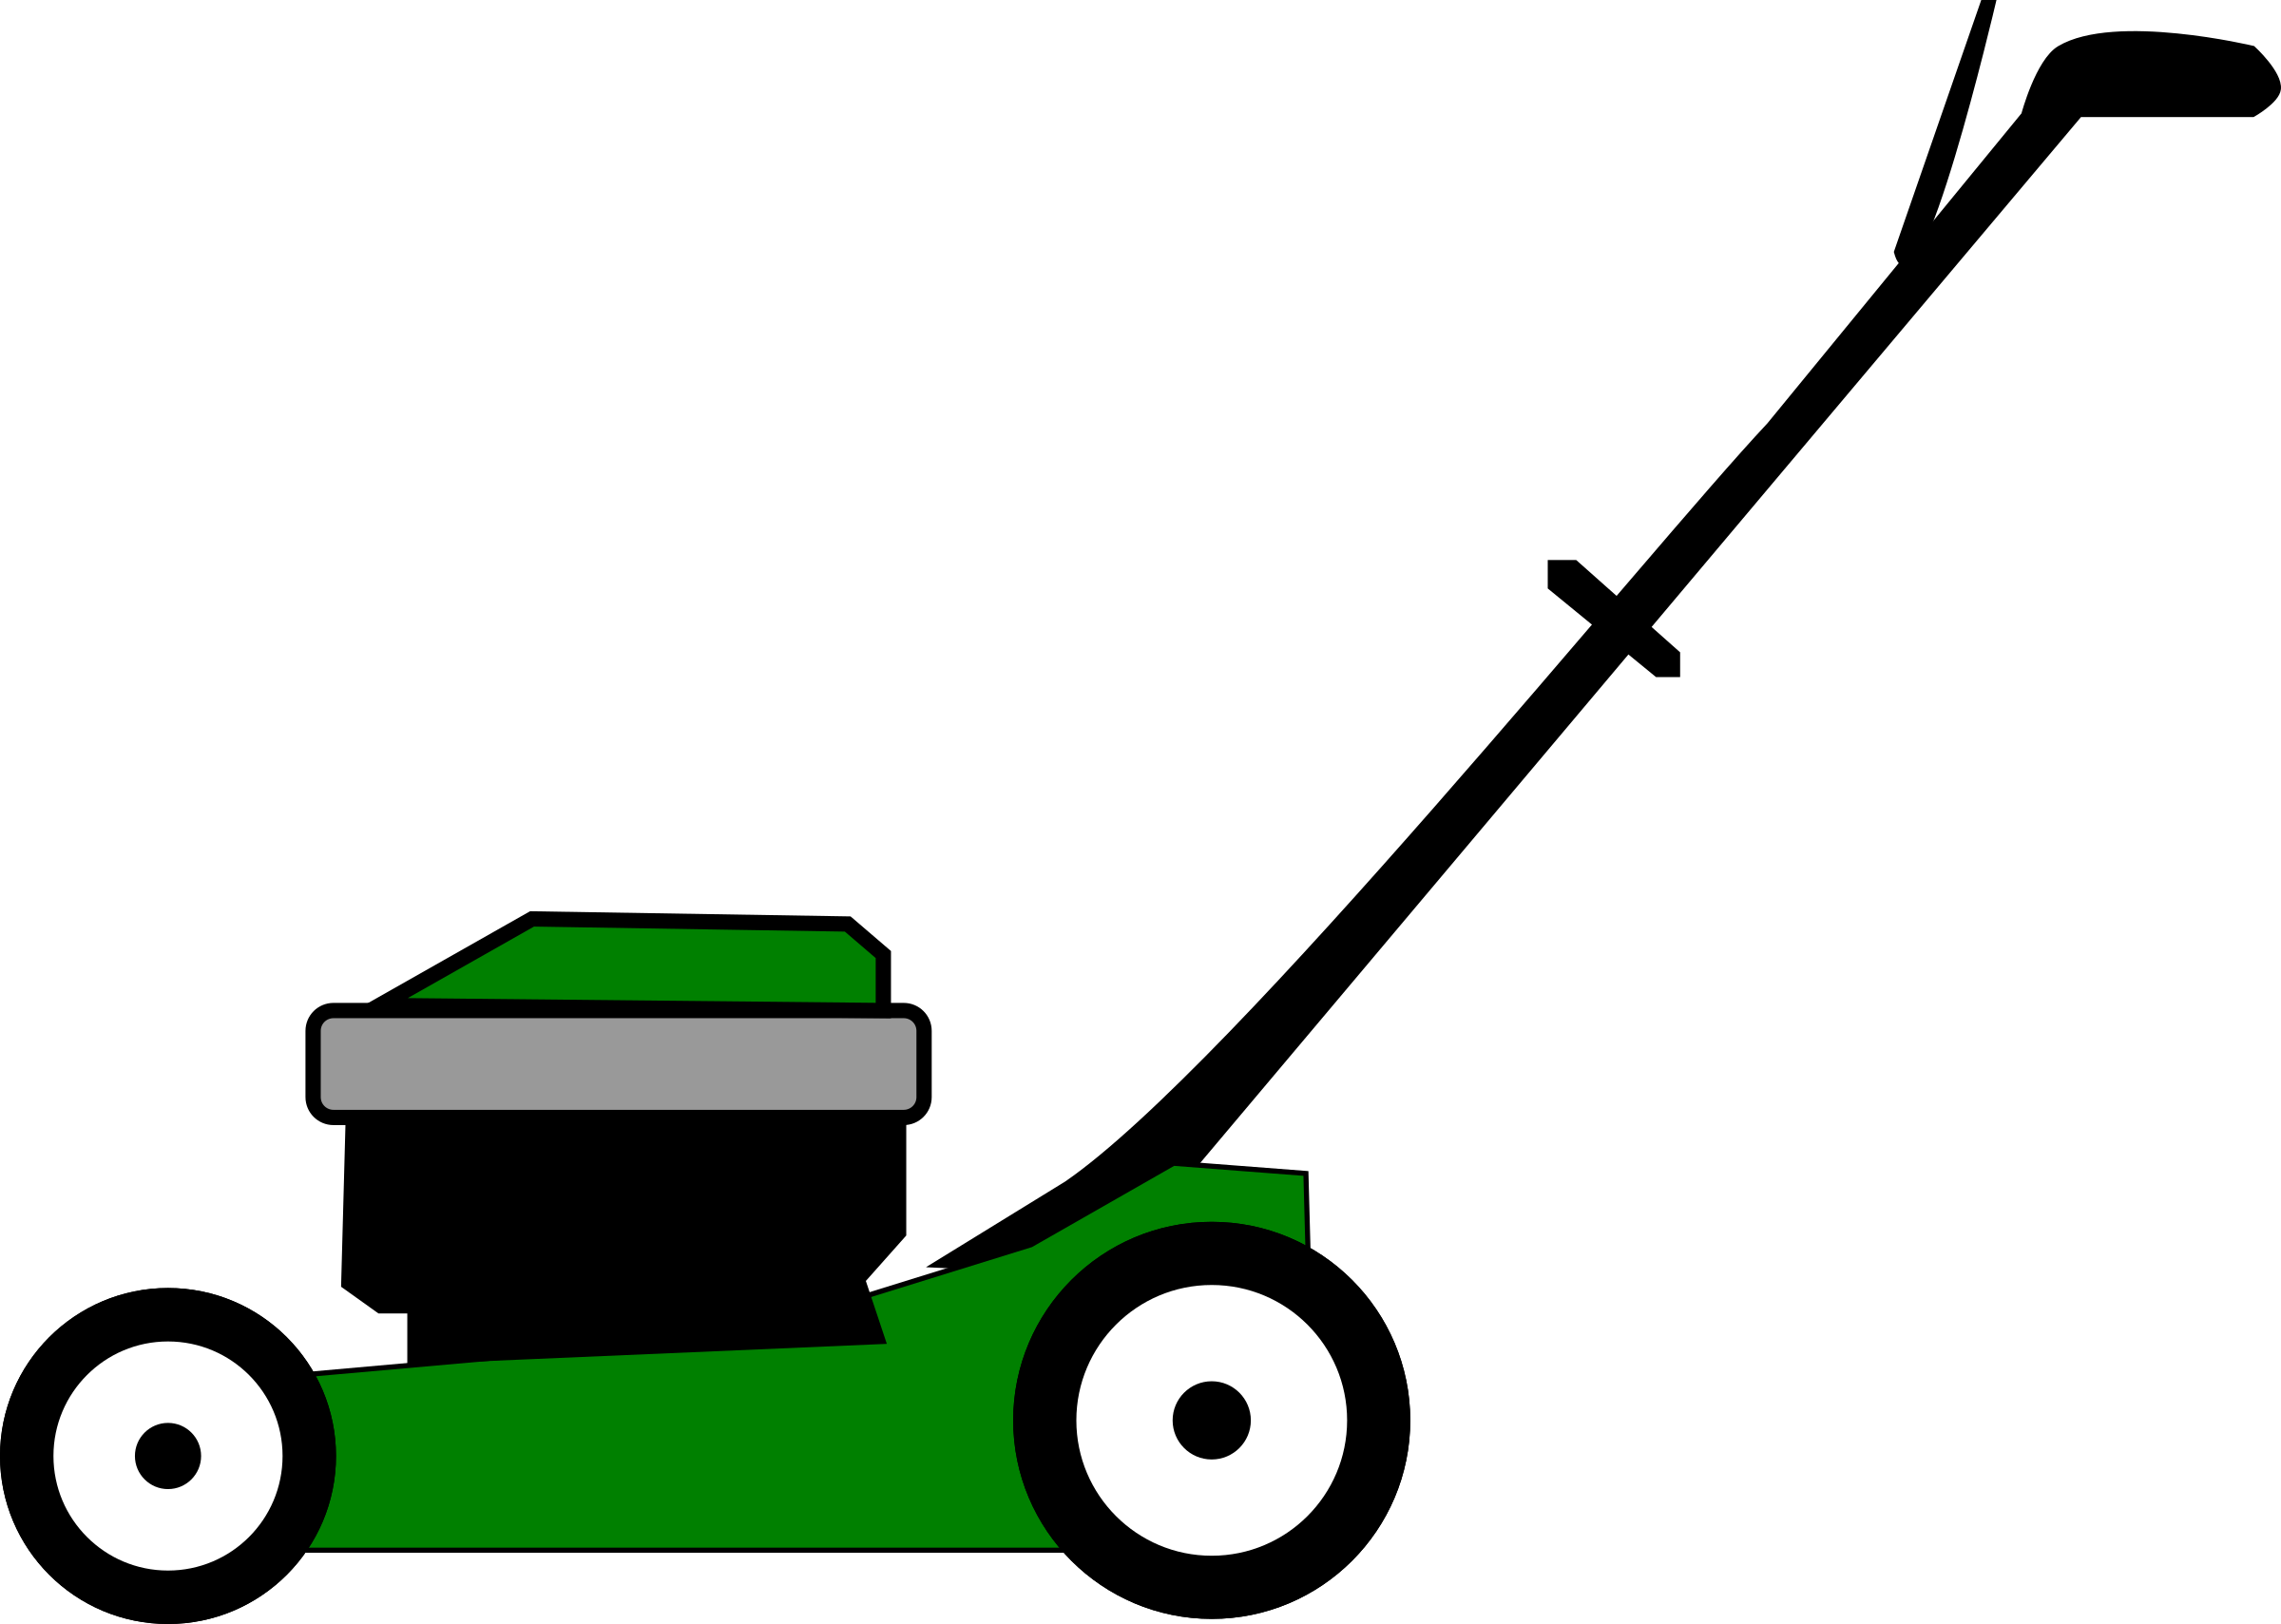 Lawn Mower Clipart - ClipArt Best